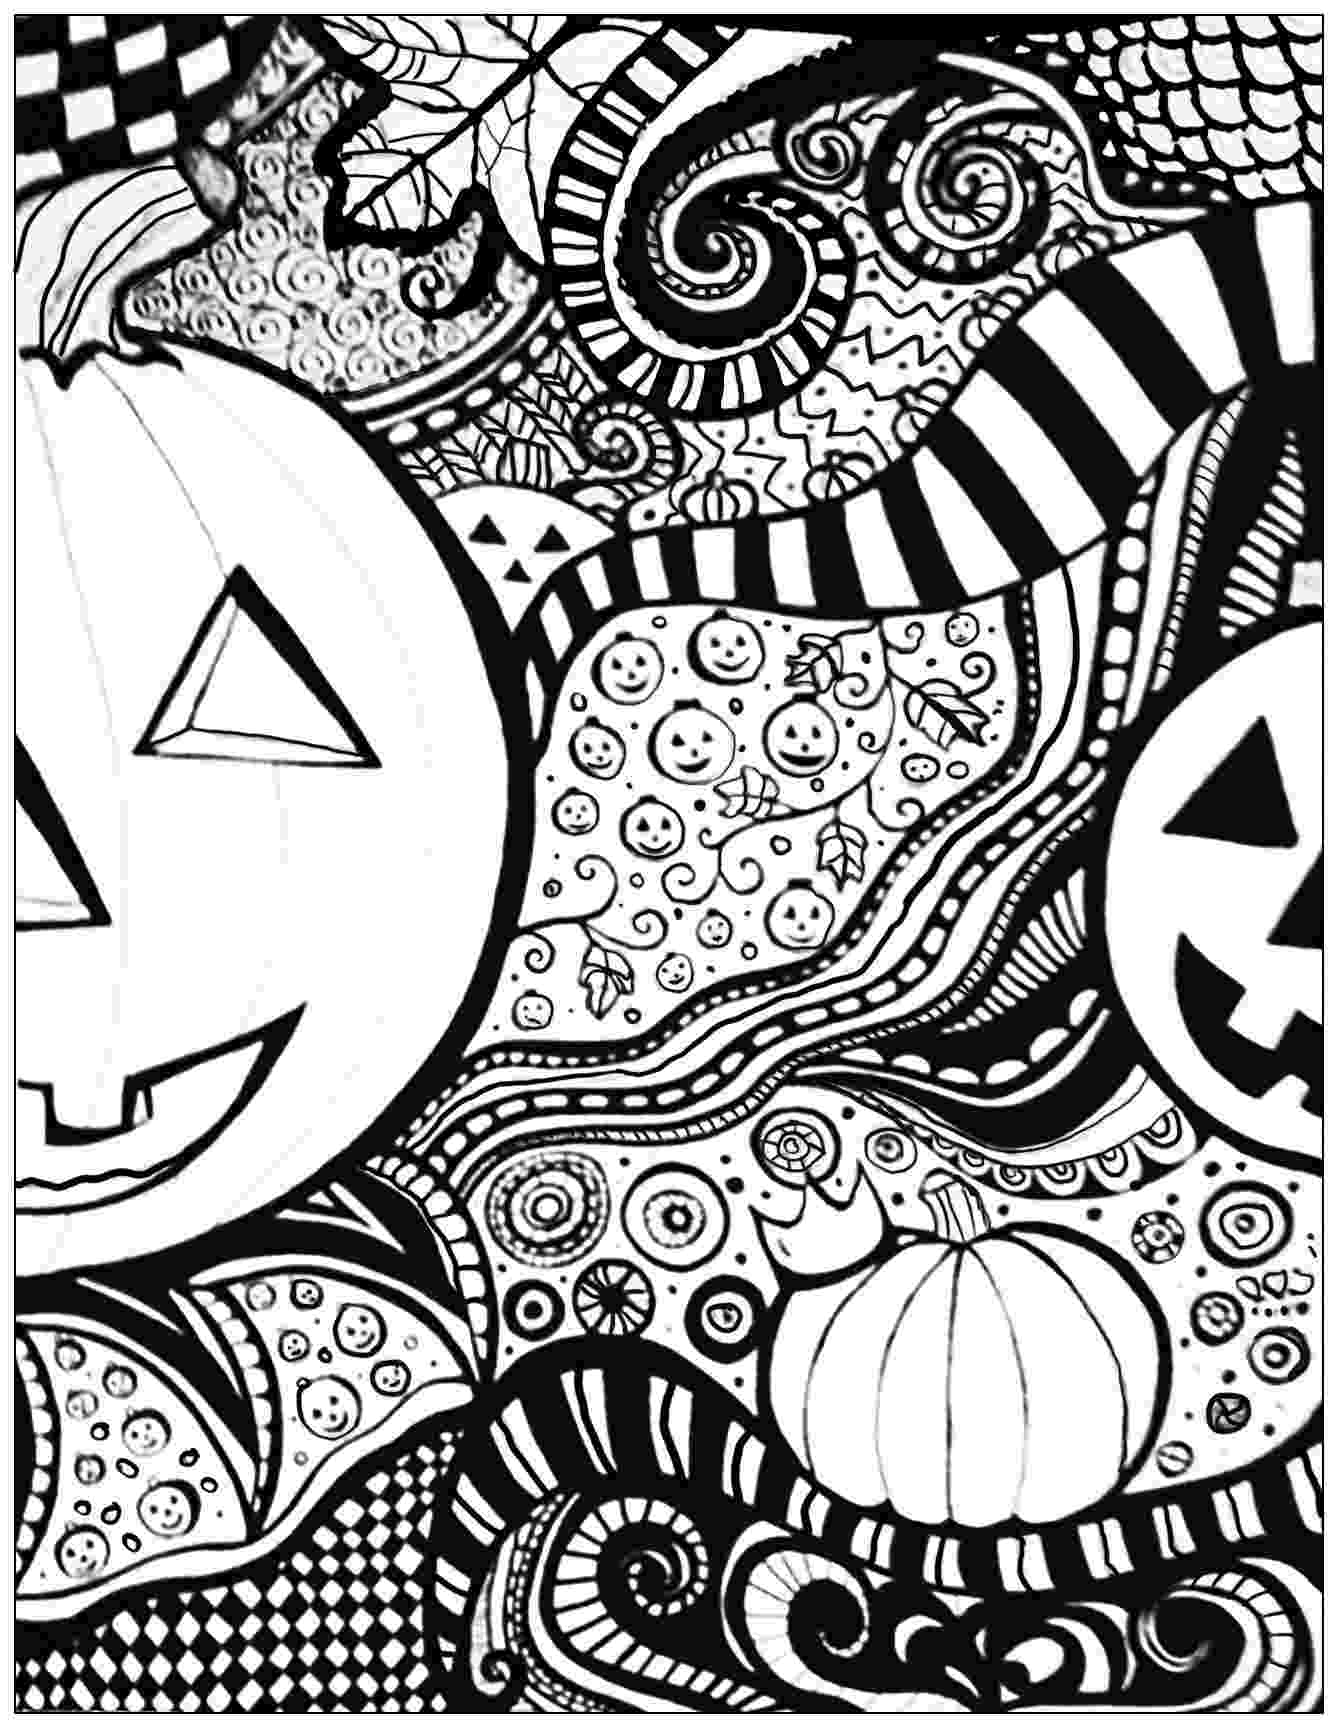 coloring pages for adults halloween halloween sheet halloween adult coloring pages for pages coloring halloween adults